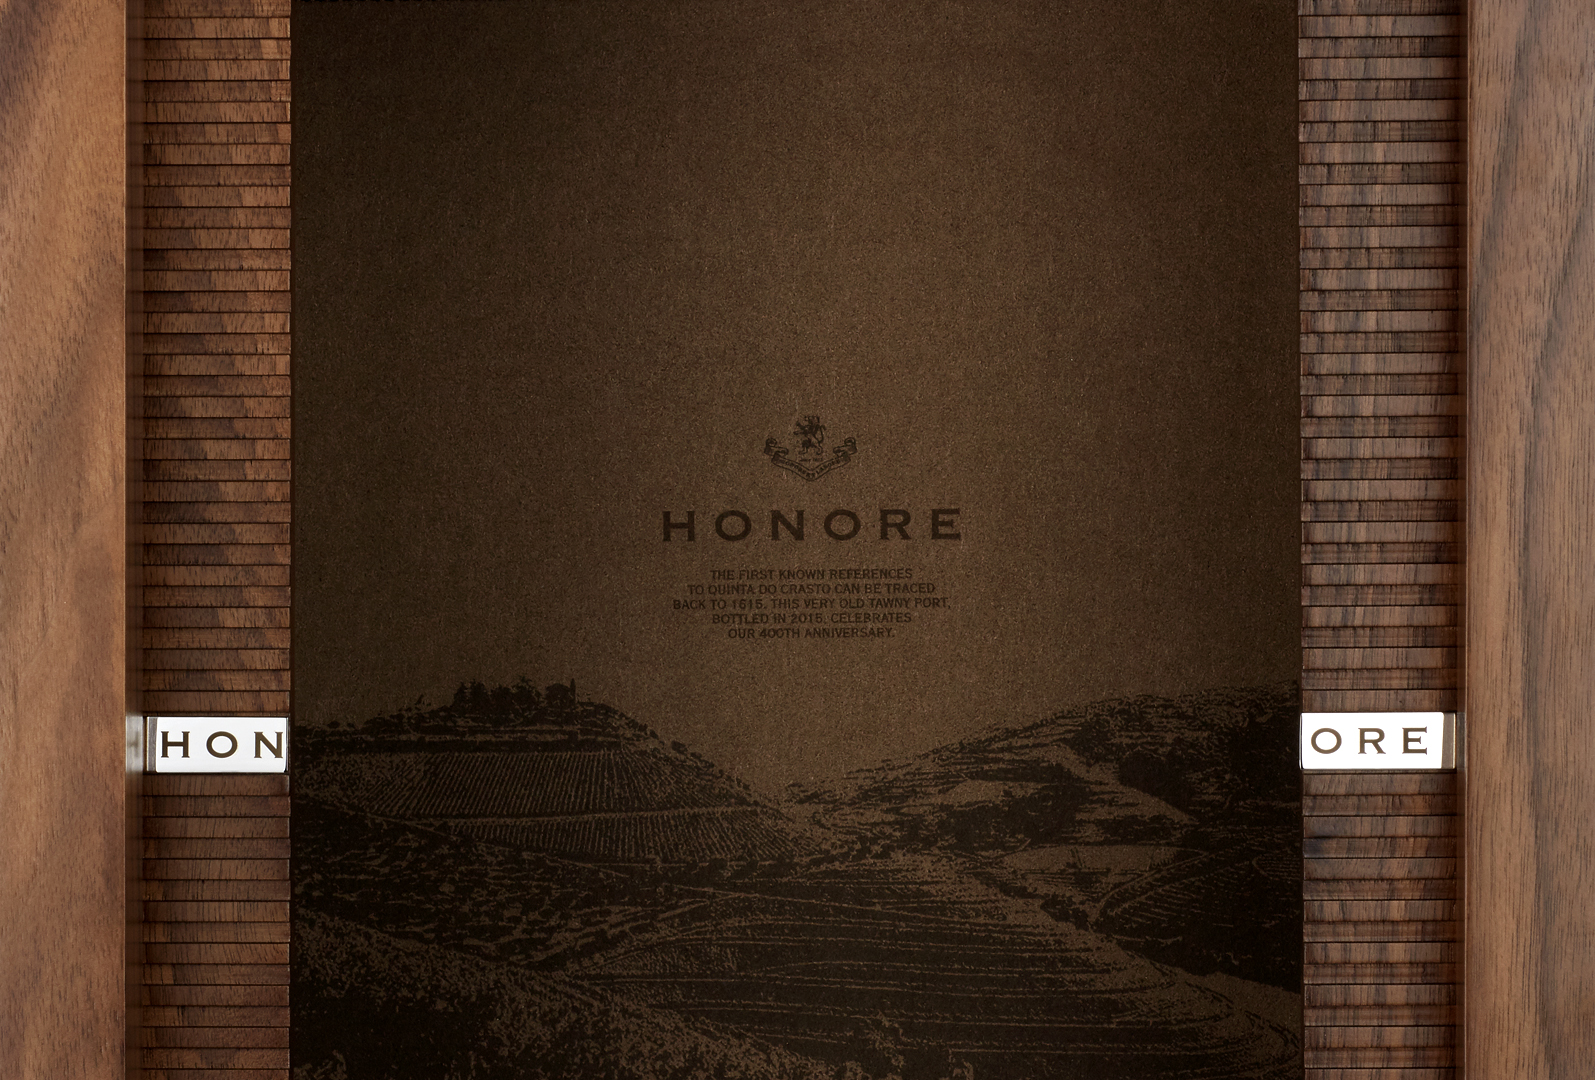 P1_Honore_Port_Omdesign_07.jpg